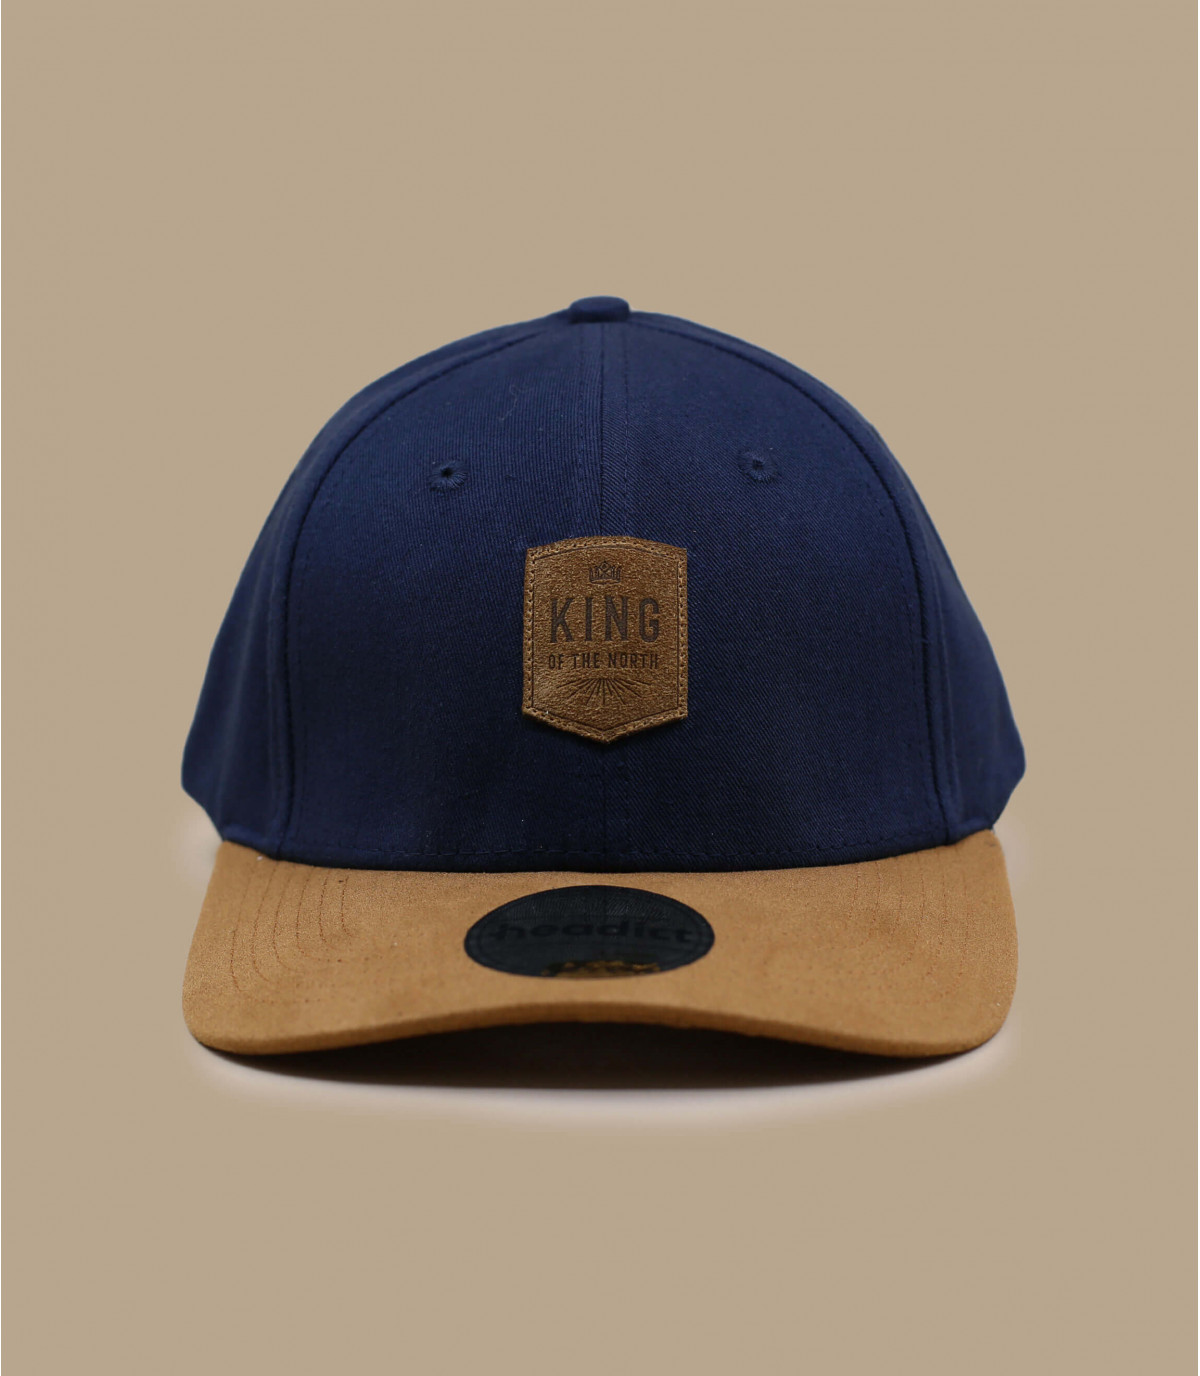 Details Curve King of the North navy brown - Abbildung 2